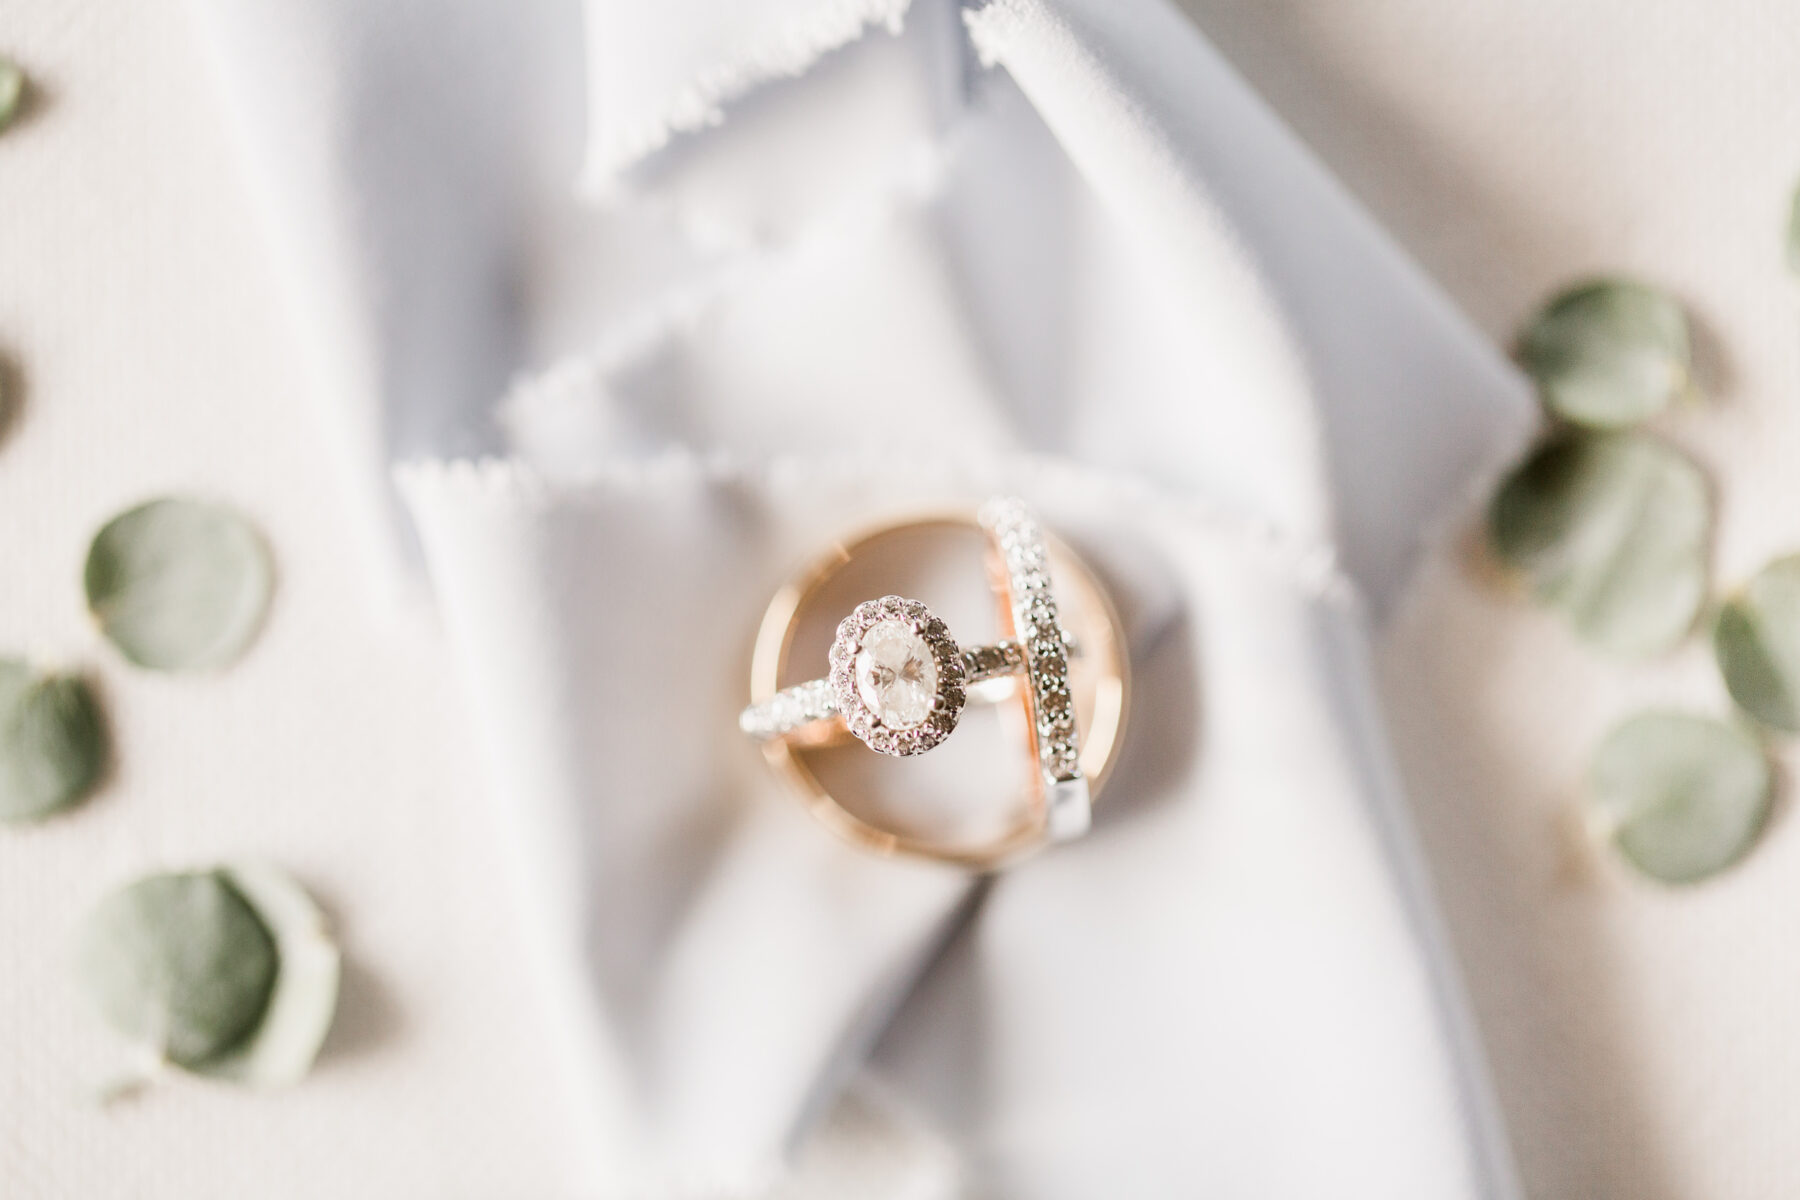 Oval Halo Engagement Ring and Wedding Bands | Nashville Bride Guide